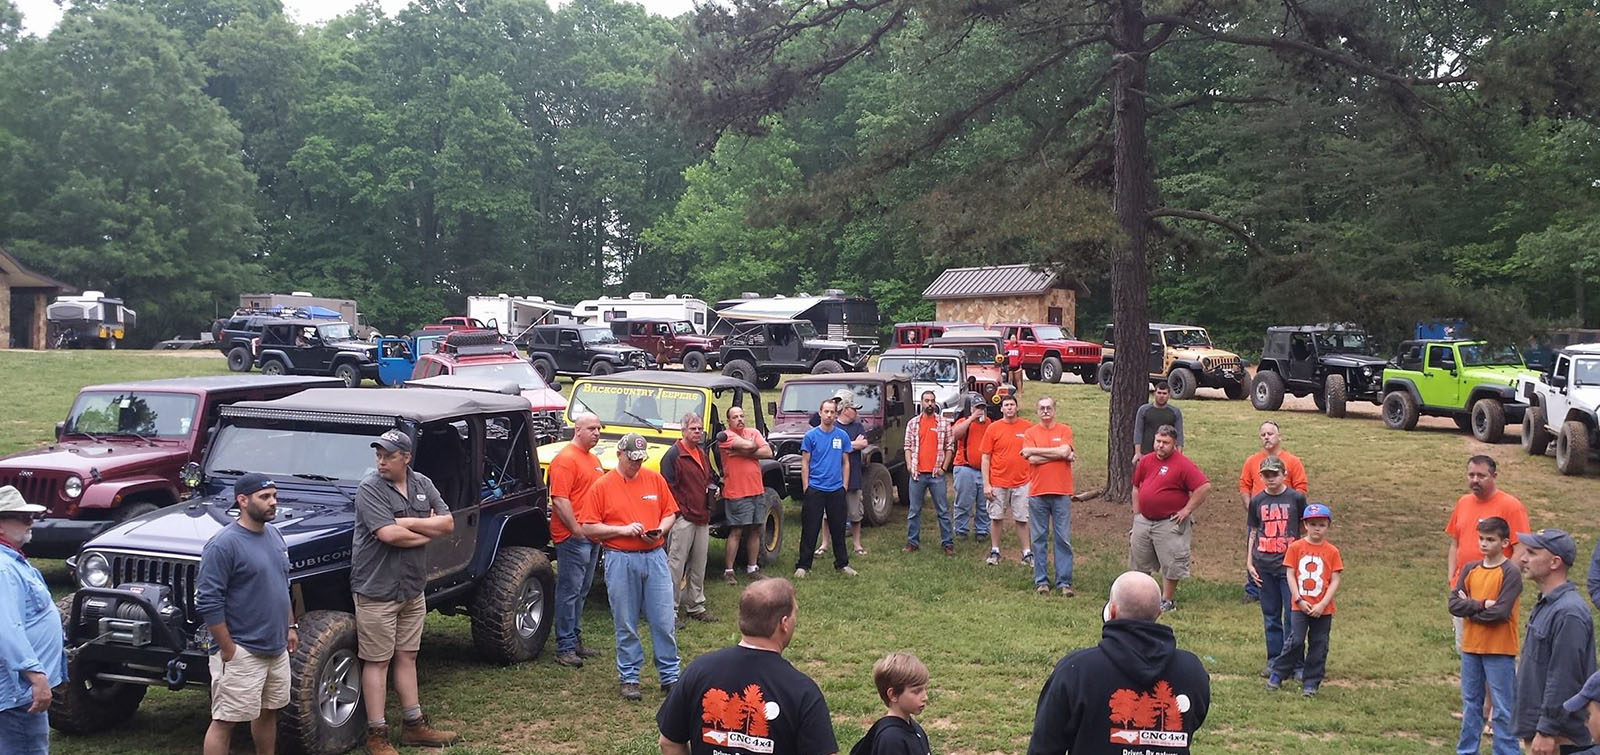 cnc4x4 spring fling pre-ride prep at Uwharrie